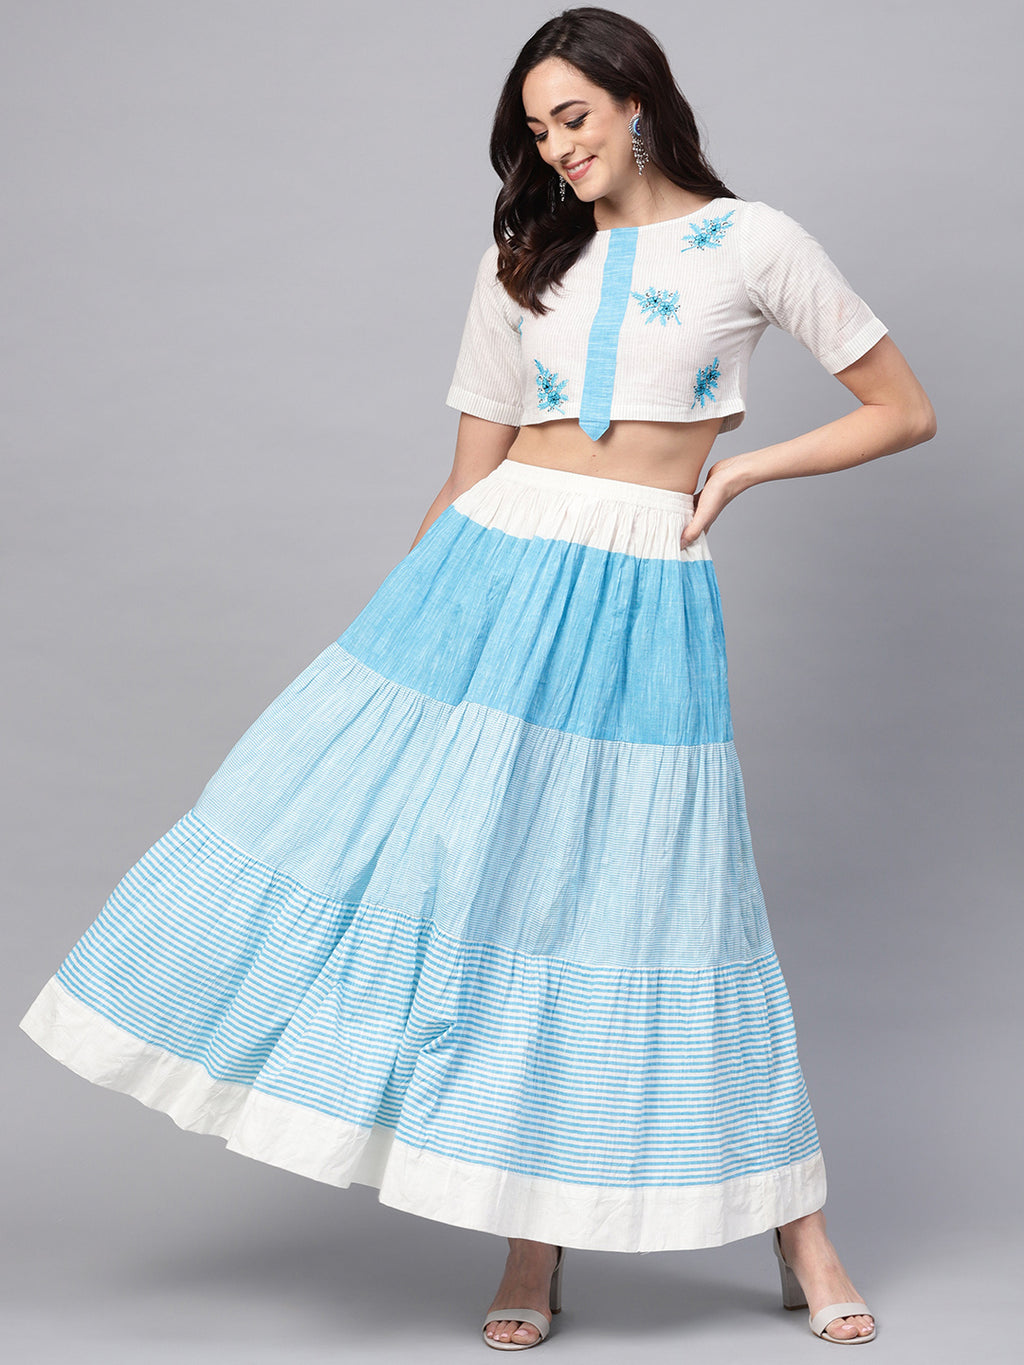 Handloom Embroidered Top With Skirt (Fully Stitched) | Znx4ever.com